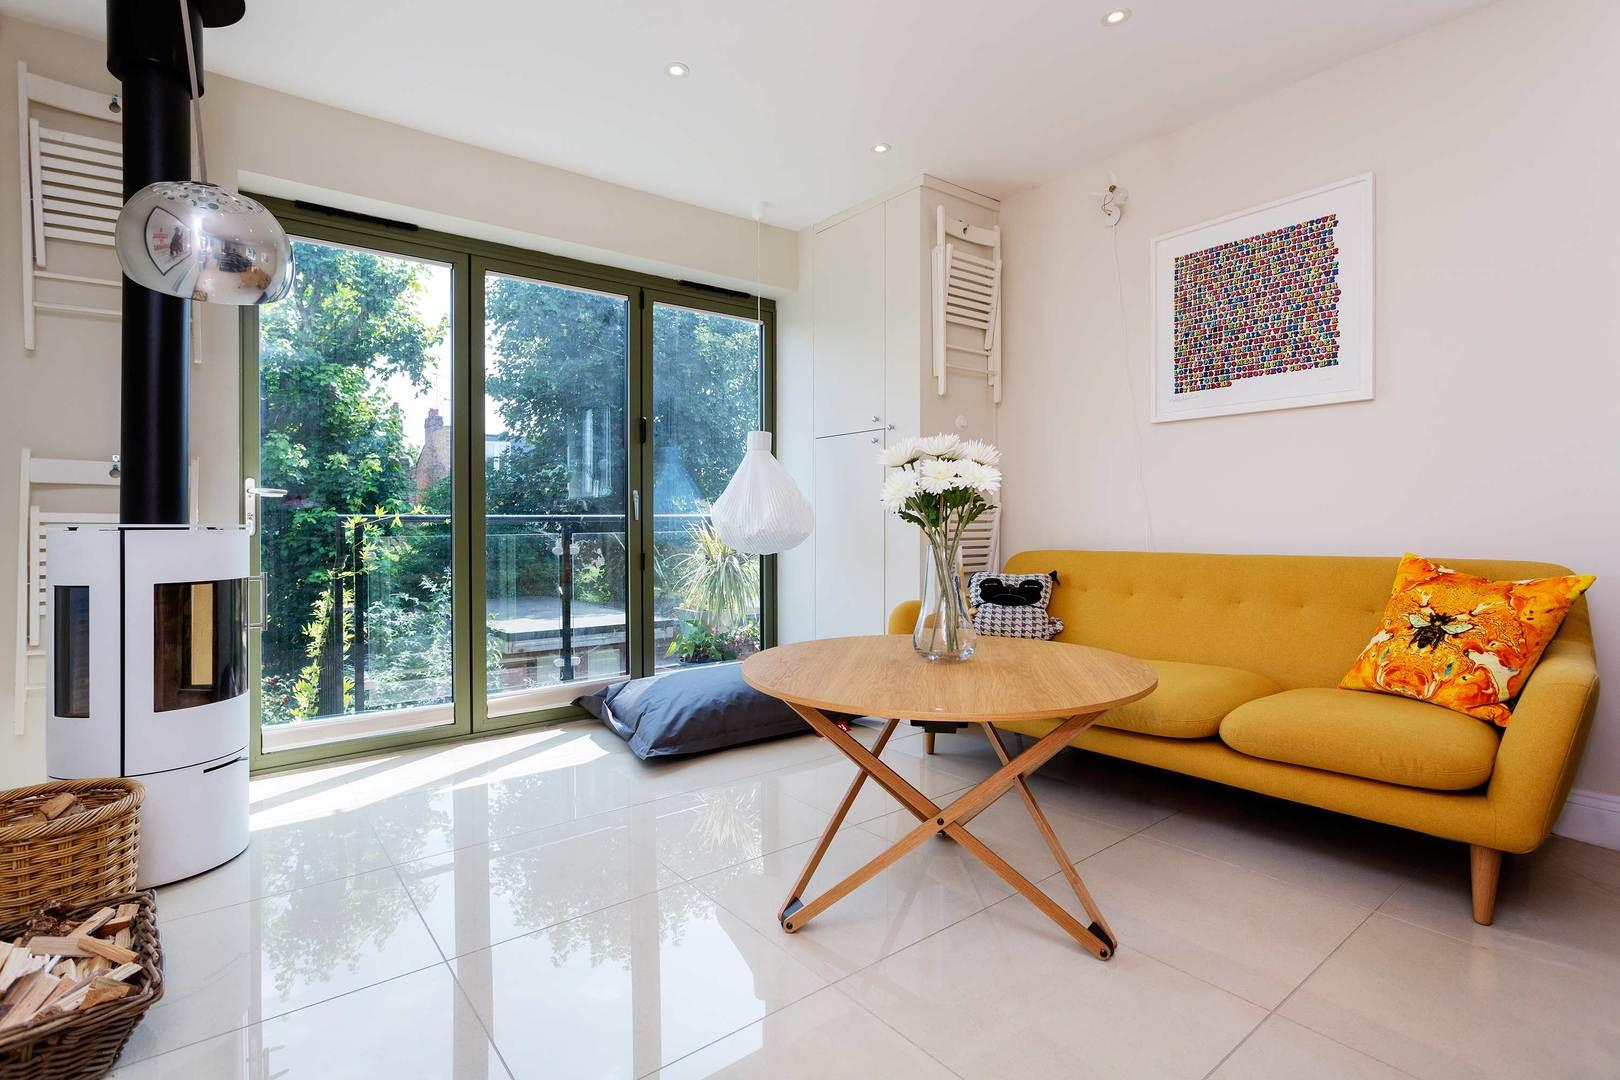 Property Image 1 - Contemporary House in Chiswick, Perfect for Families